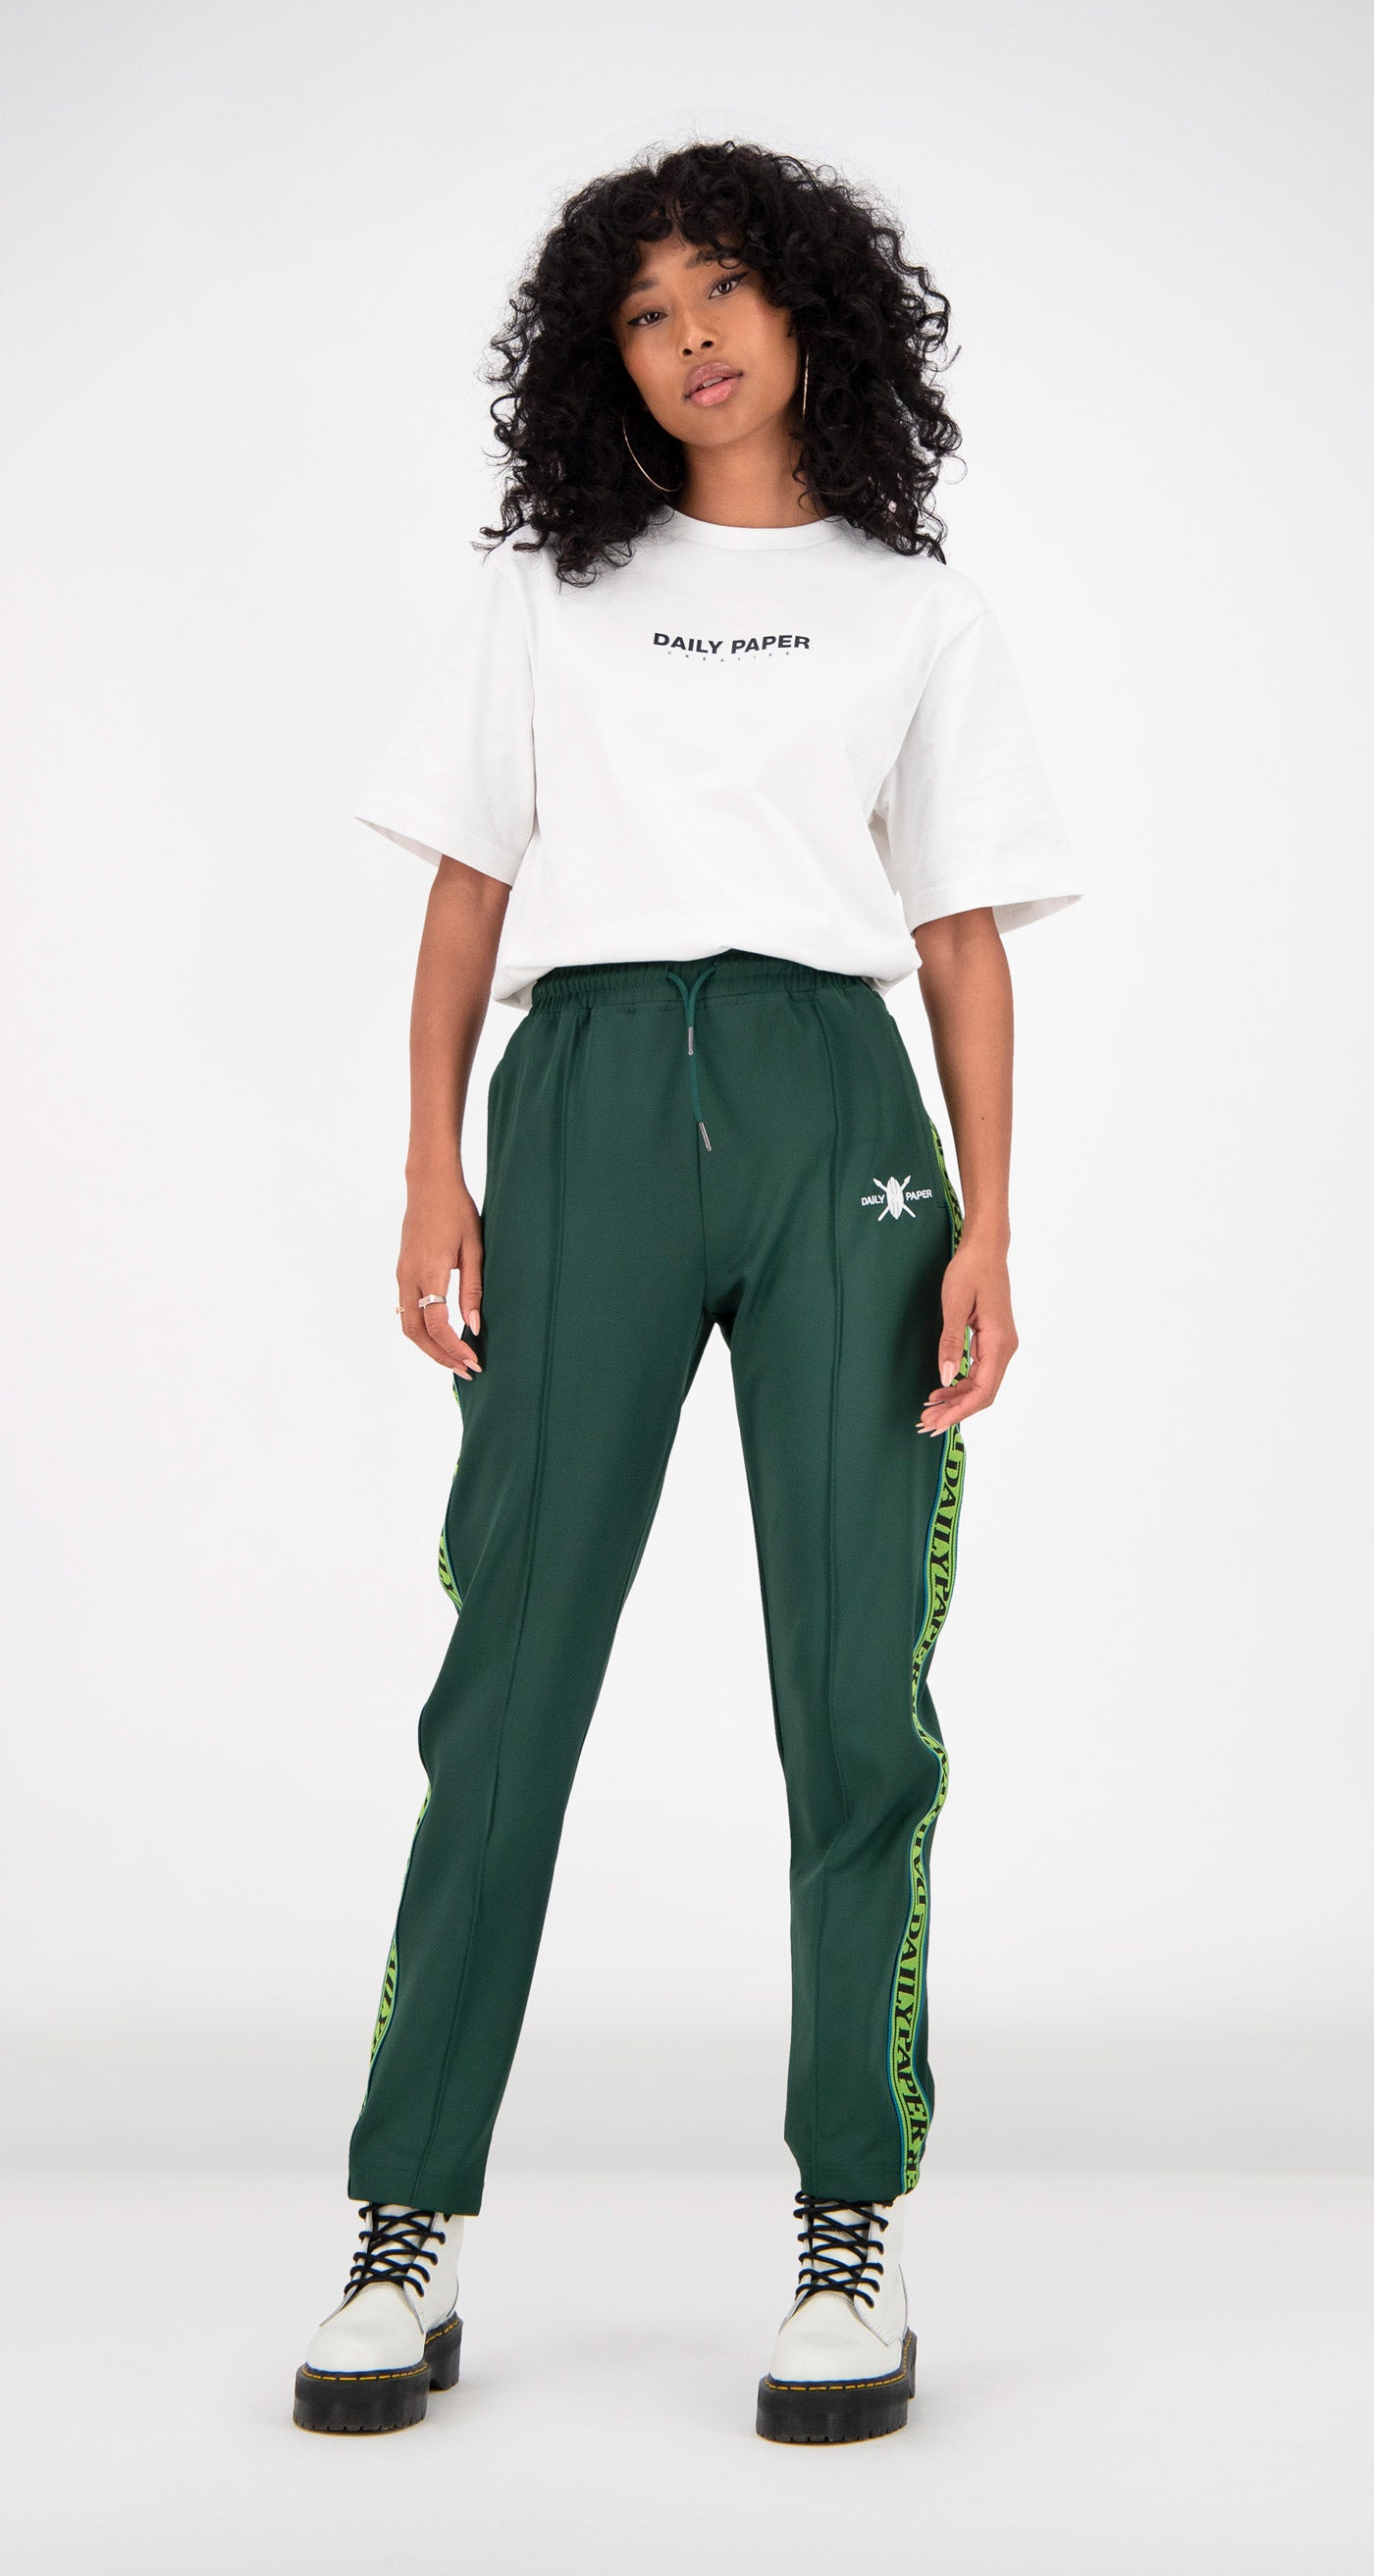 Daily Paper - Green Liba Track Pants Women Front